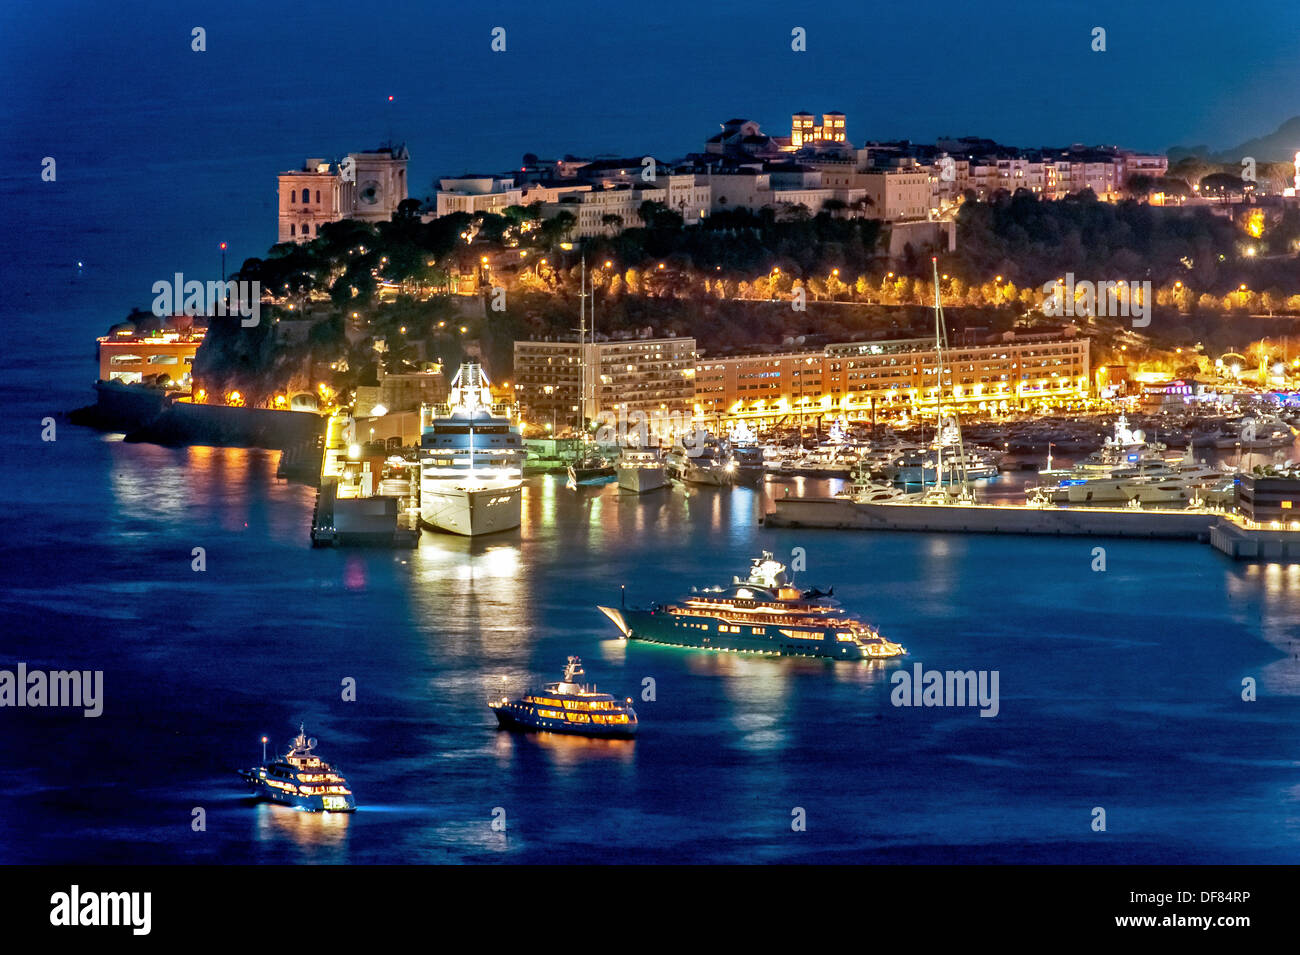 Europe, France, Principality of Monaco, Monte Carlo. The Rock of Stock Photo, Royalty Free Image ...